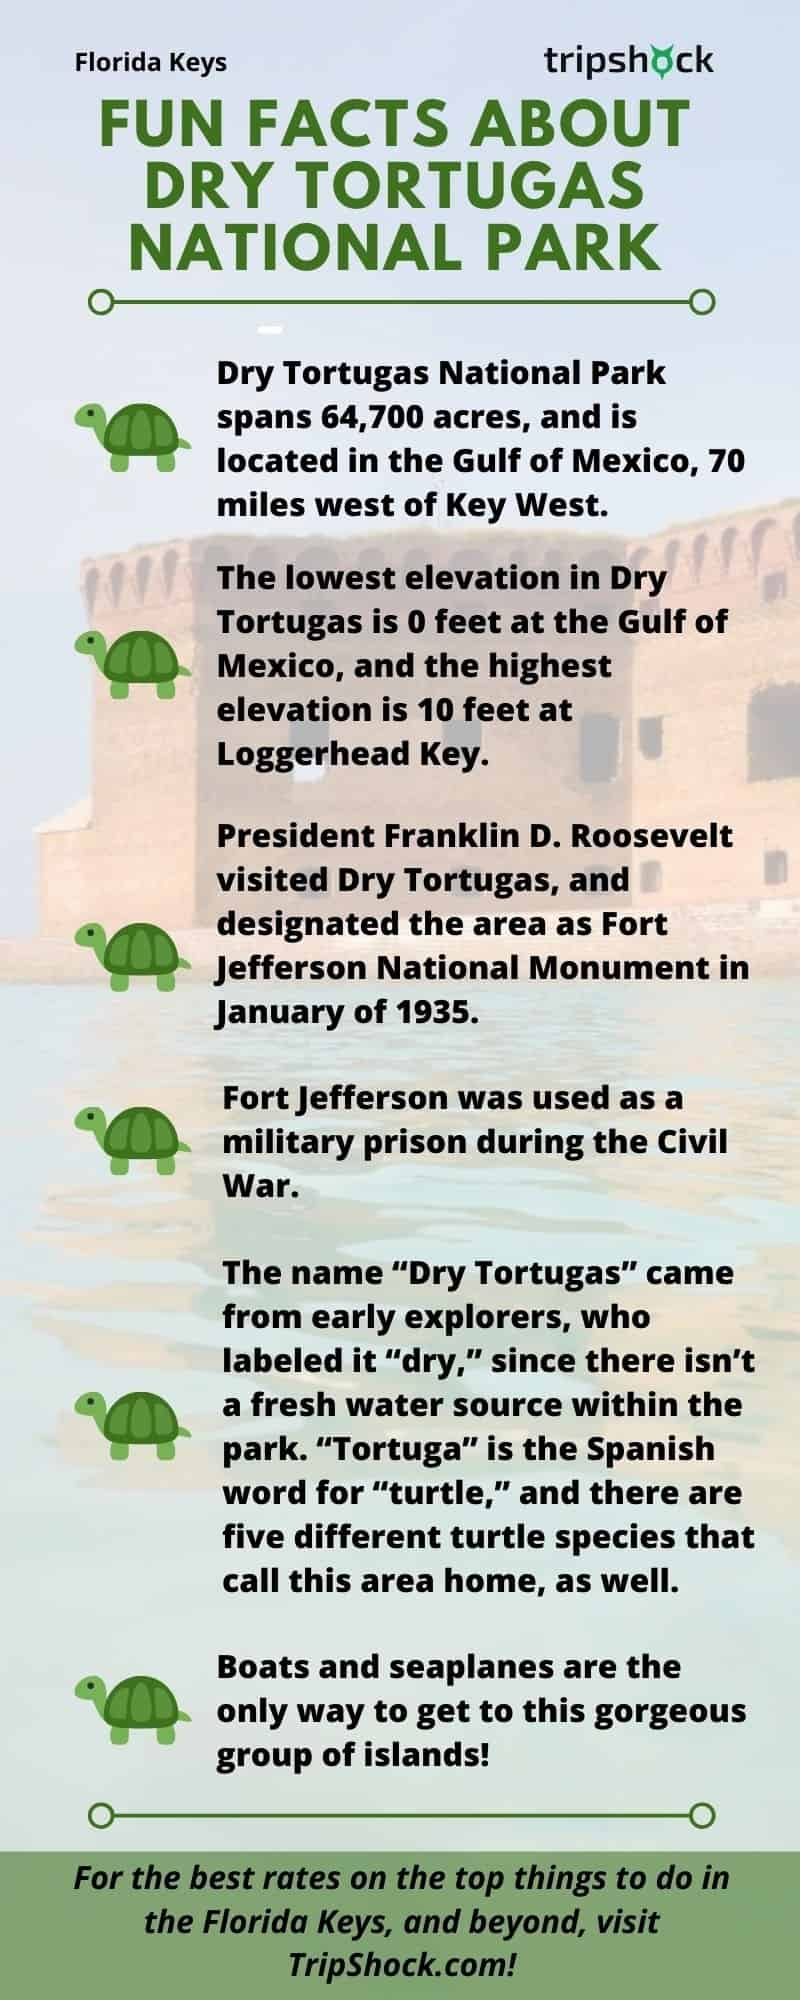 infographic facts about dry tortugas national park